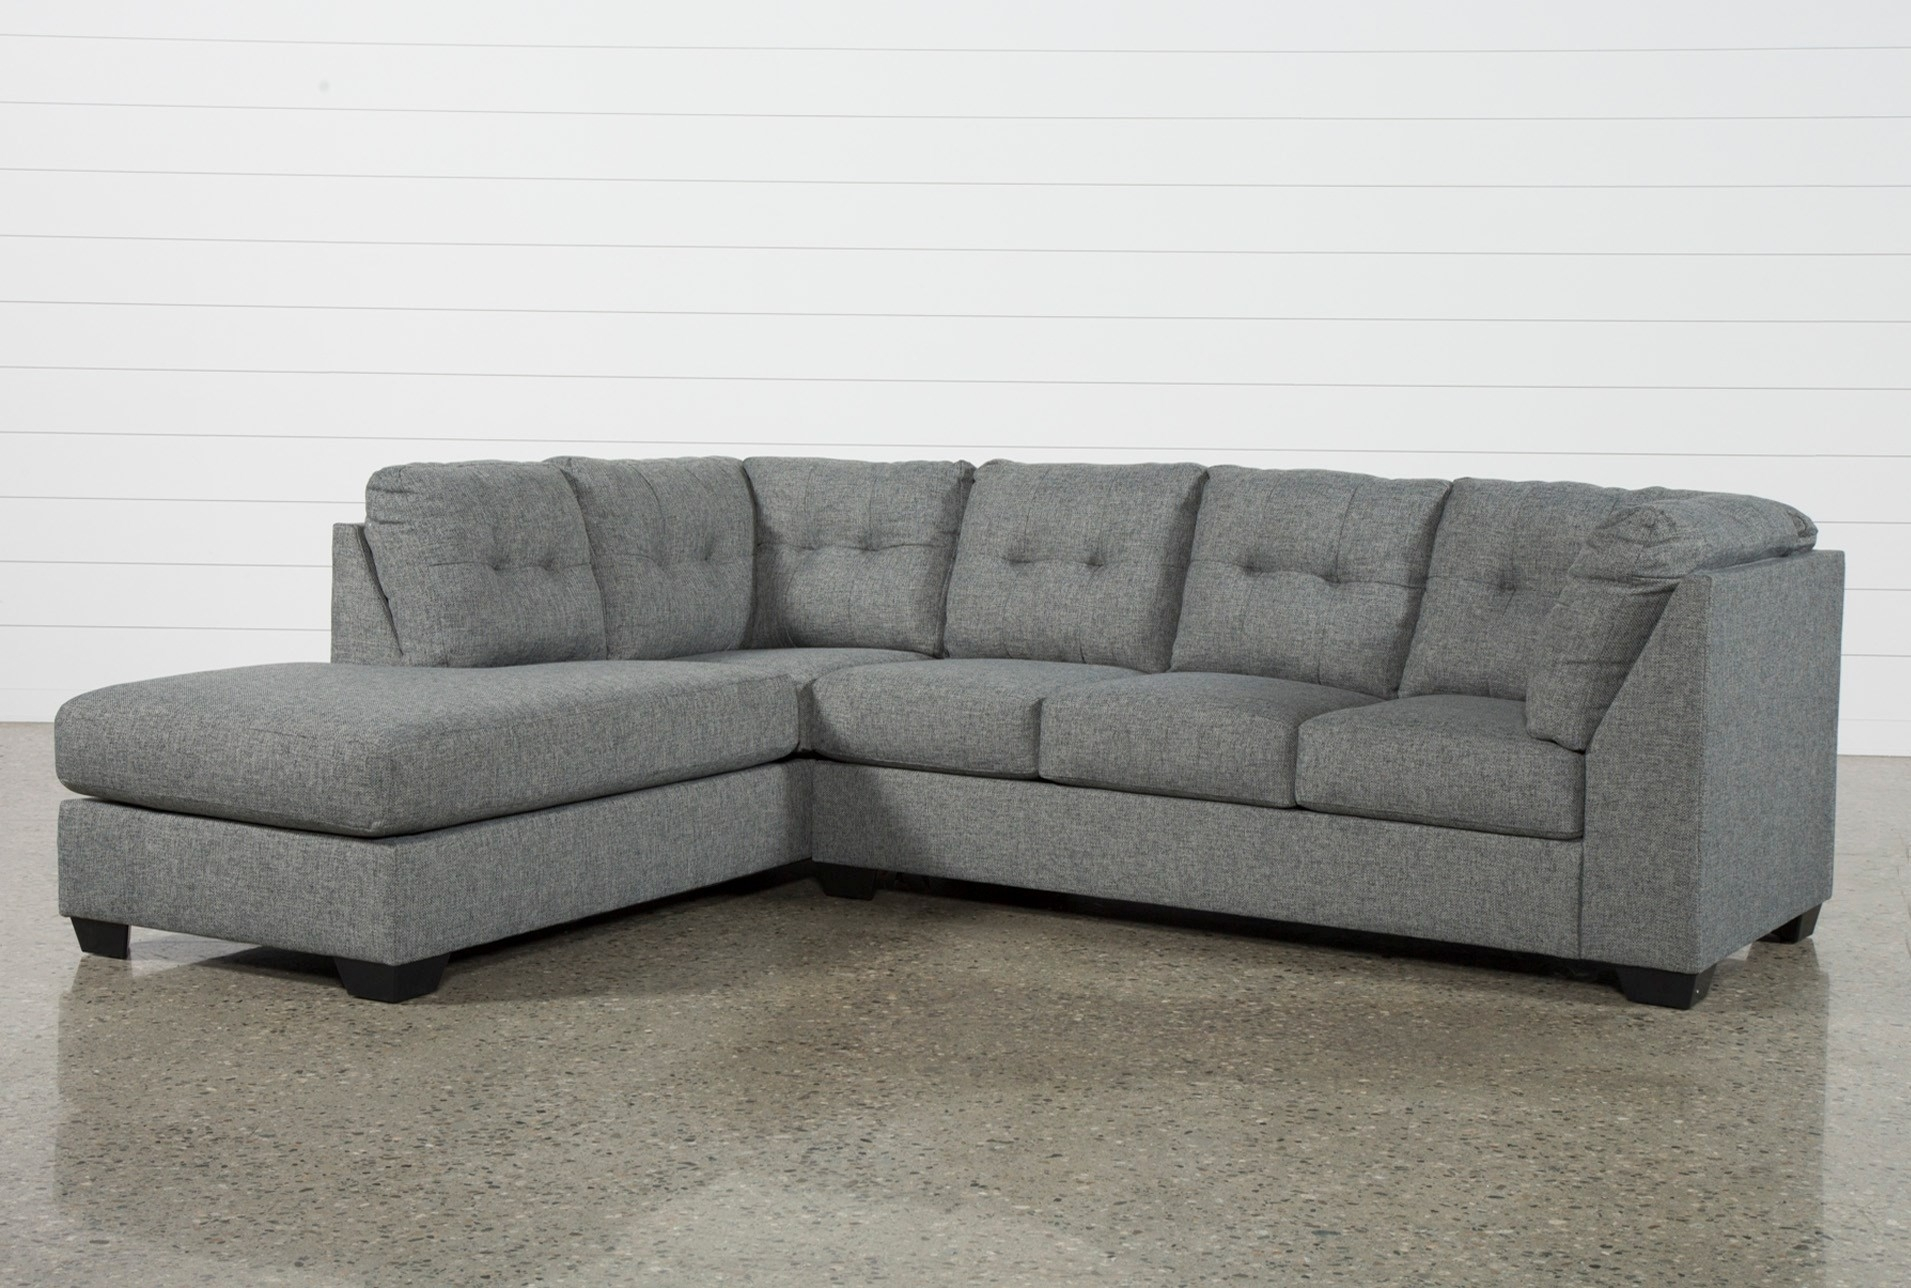 2 Piece Sectional Lucy Grey W Laf Chaise Living Spaces 225935 Fabric With Regard To Lucy Grey 2 Piece Sectionals With Raf Chaise (View 4 of 25)